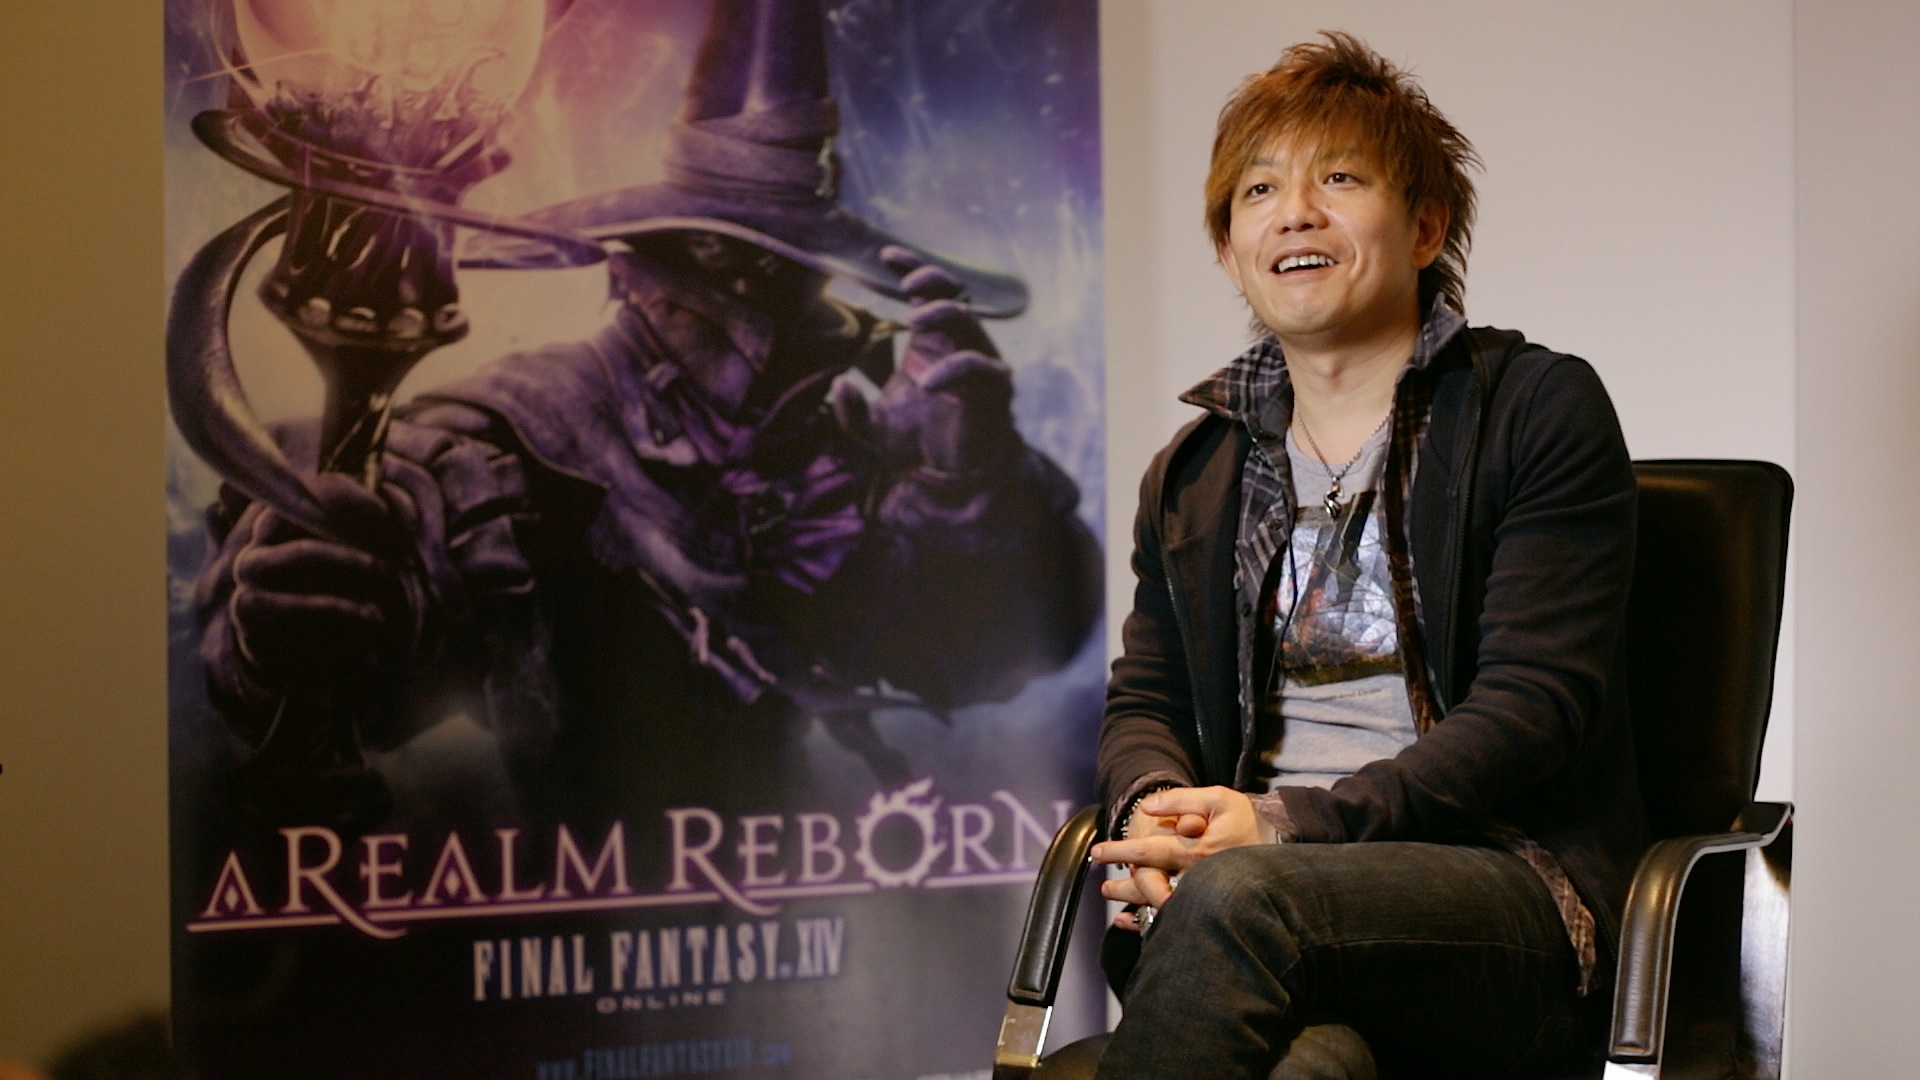 Video: The second coming of Final Fantasy XIV